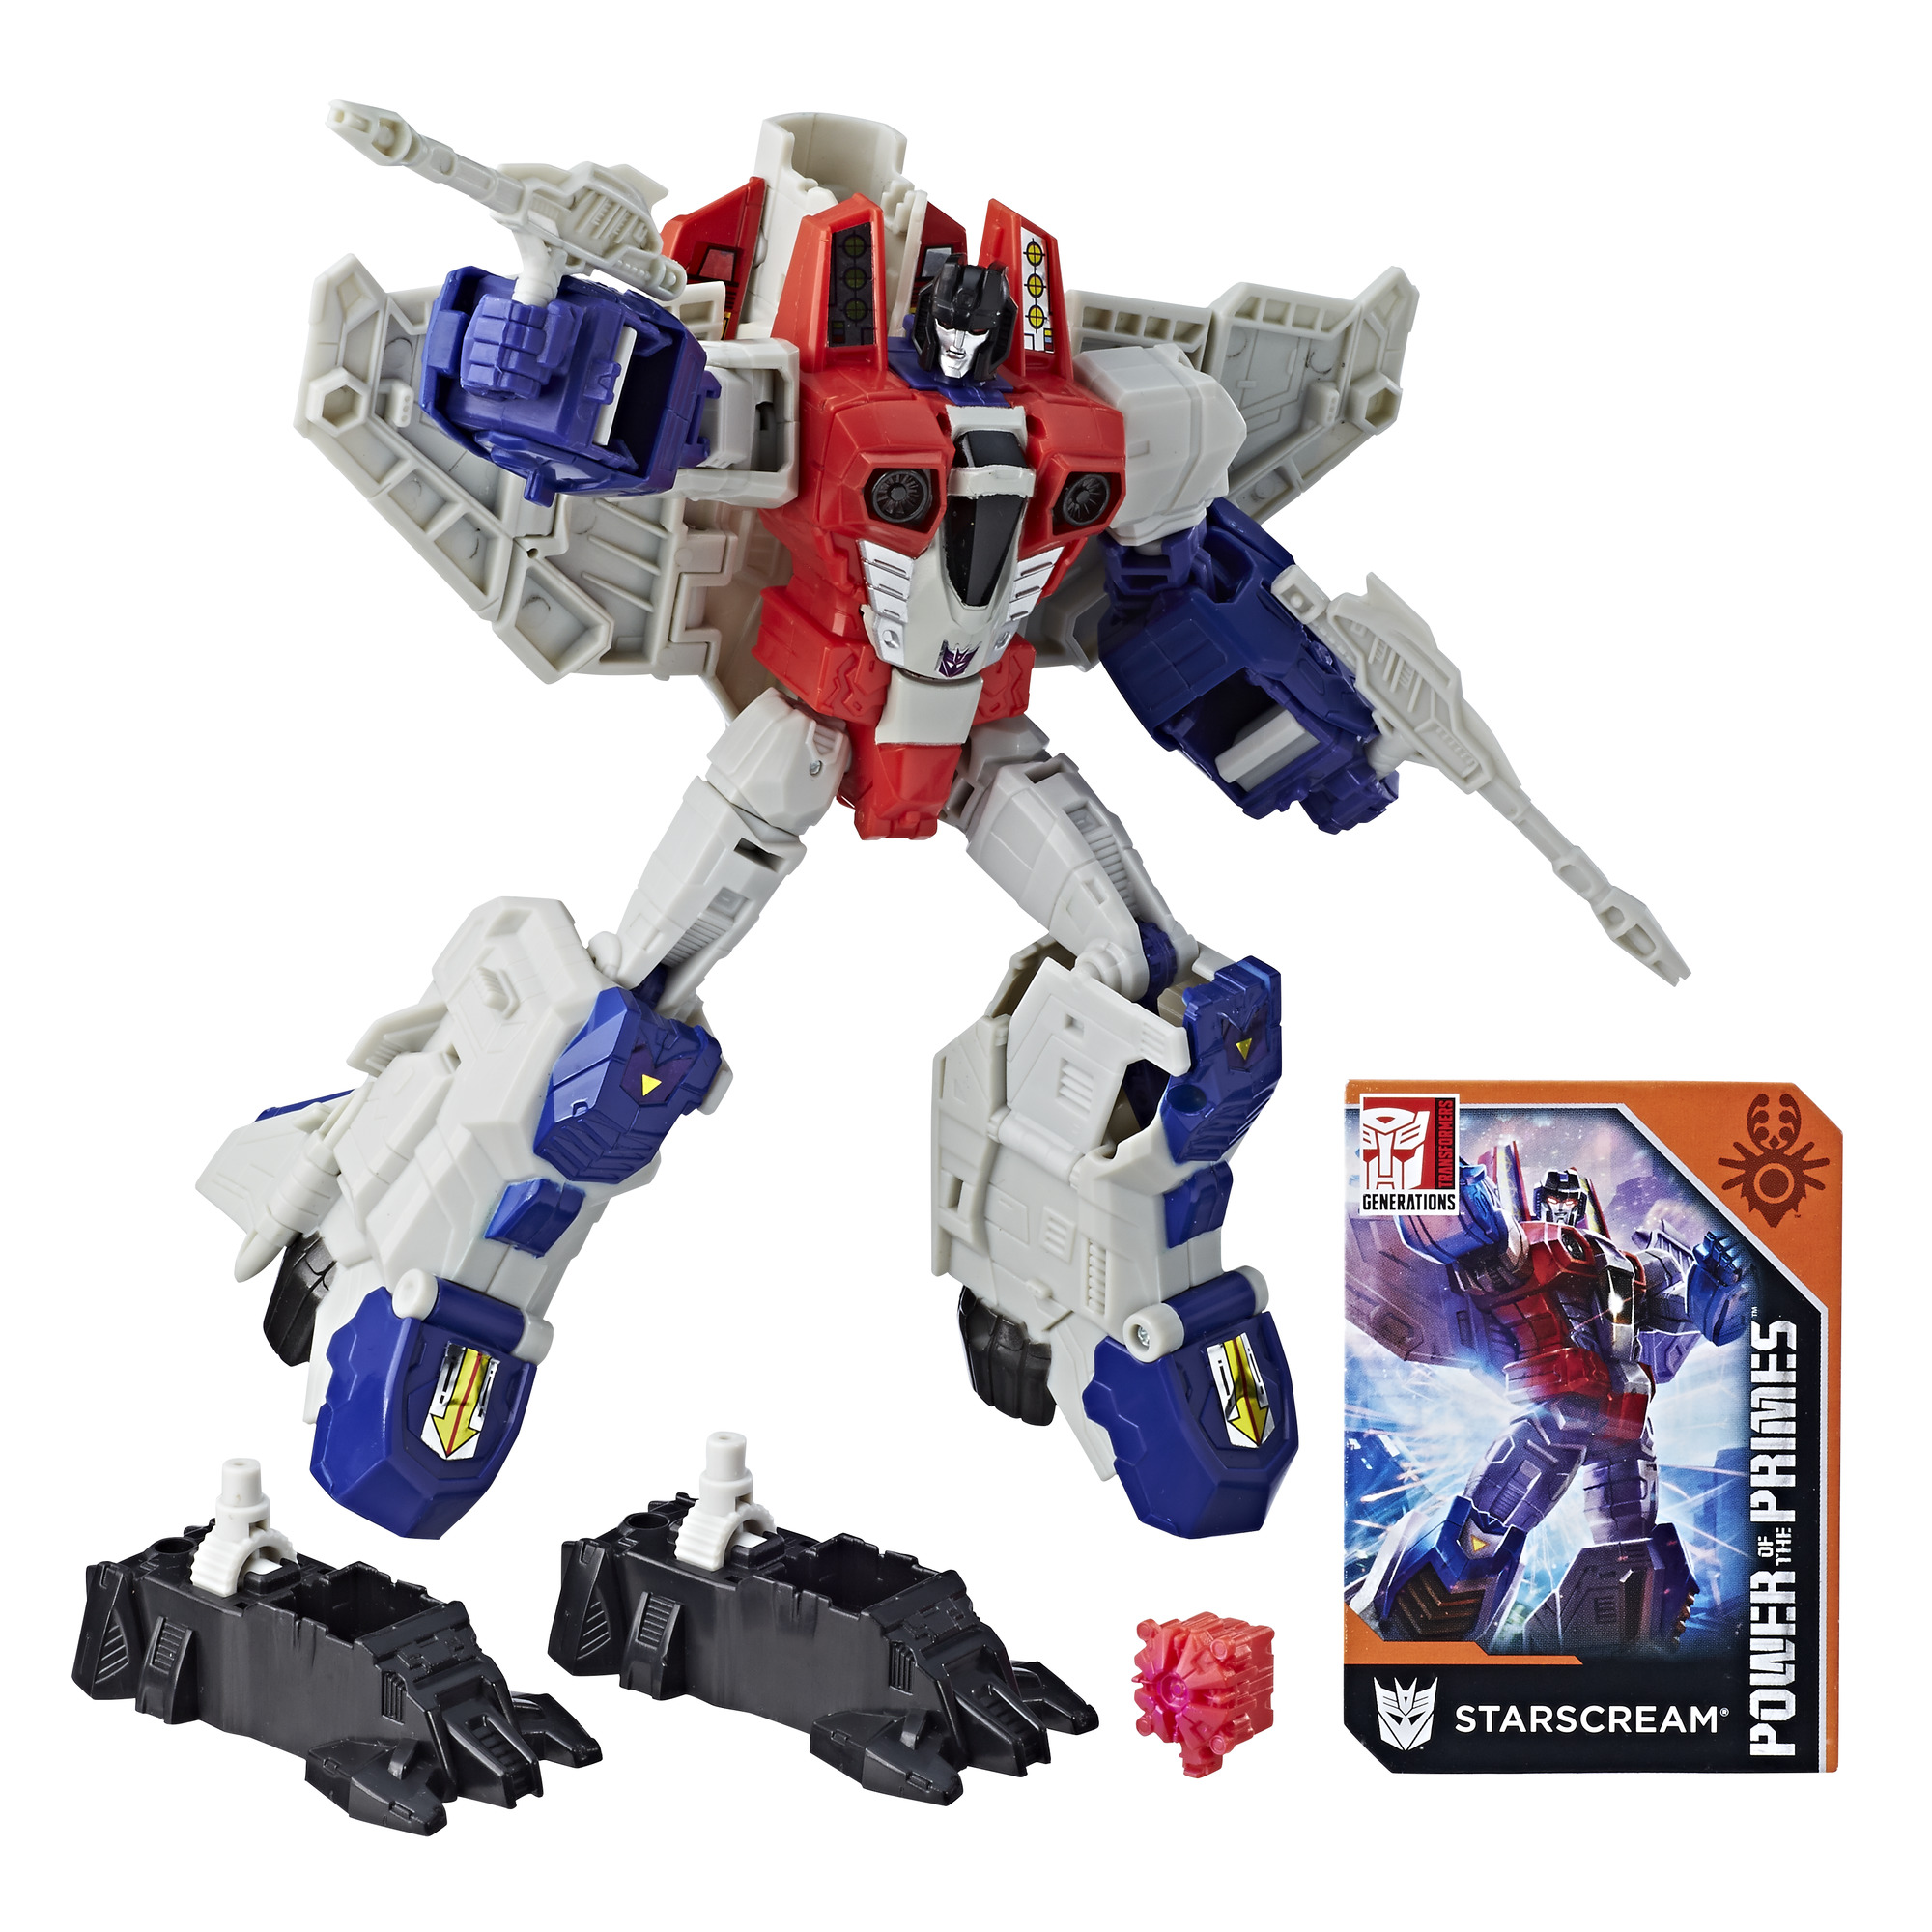 Transformers: Generations Power of the Primes Voyager Class Starscream by Hasbro, Inc